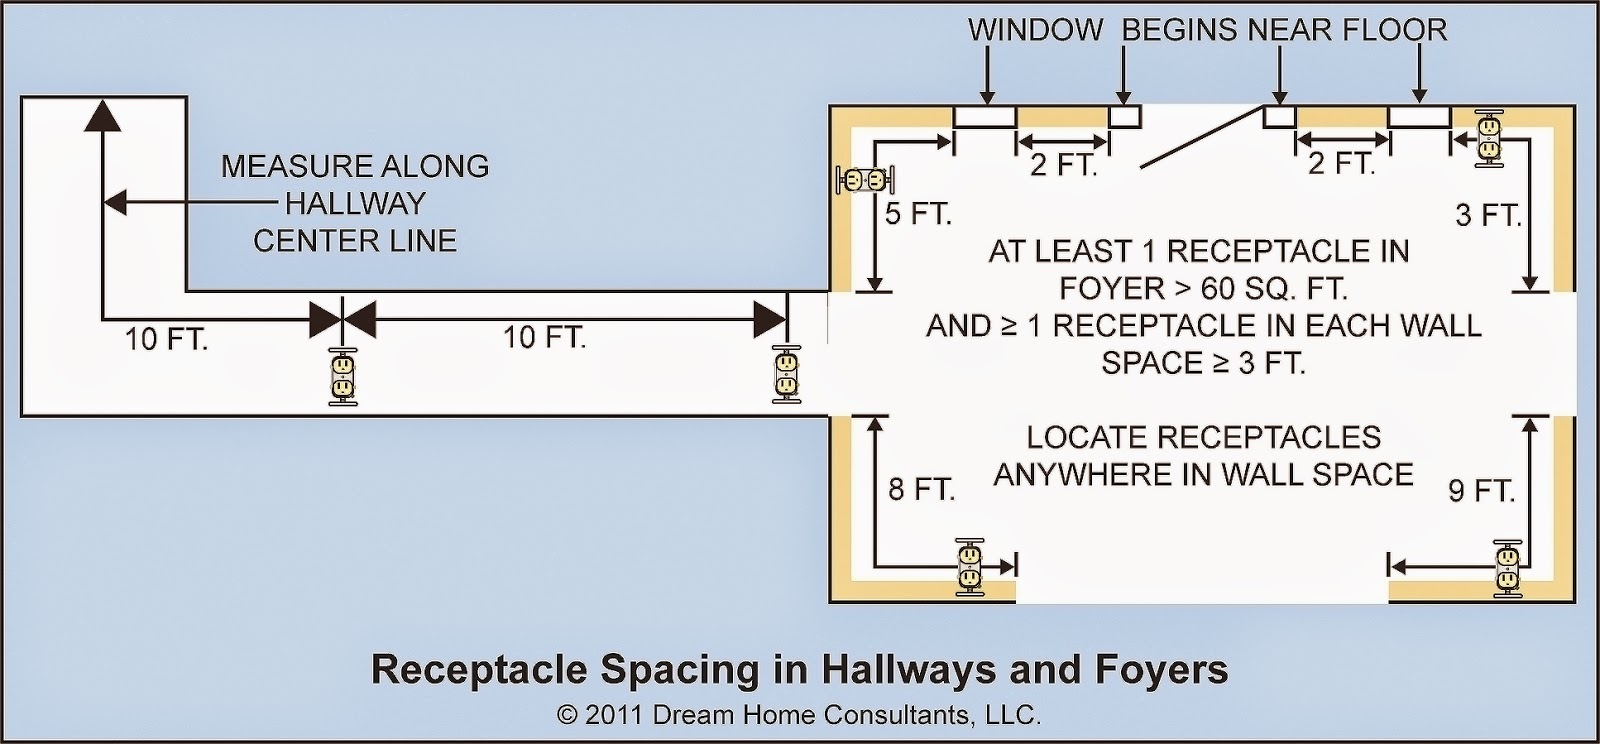 how to wire a split receptacle controlled by switch diagram images hvac service receptacles install at least one accessible